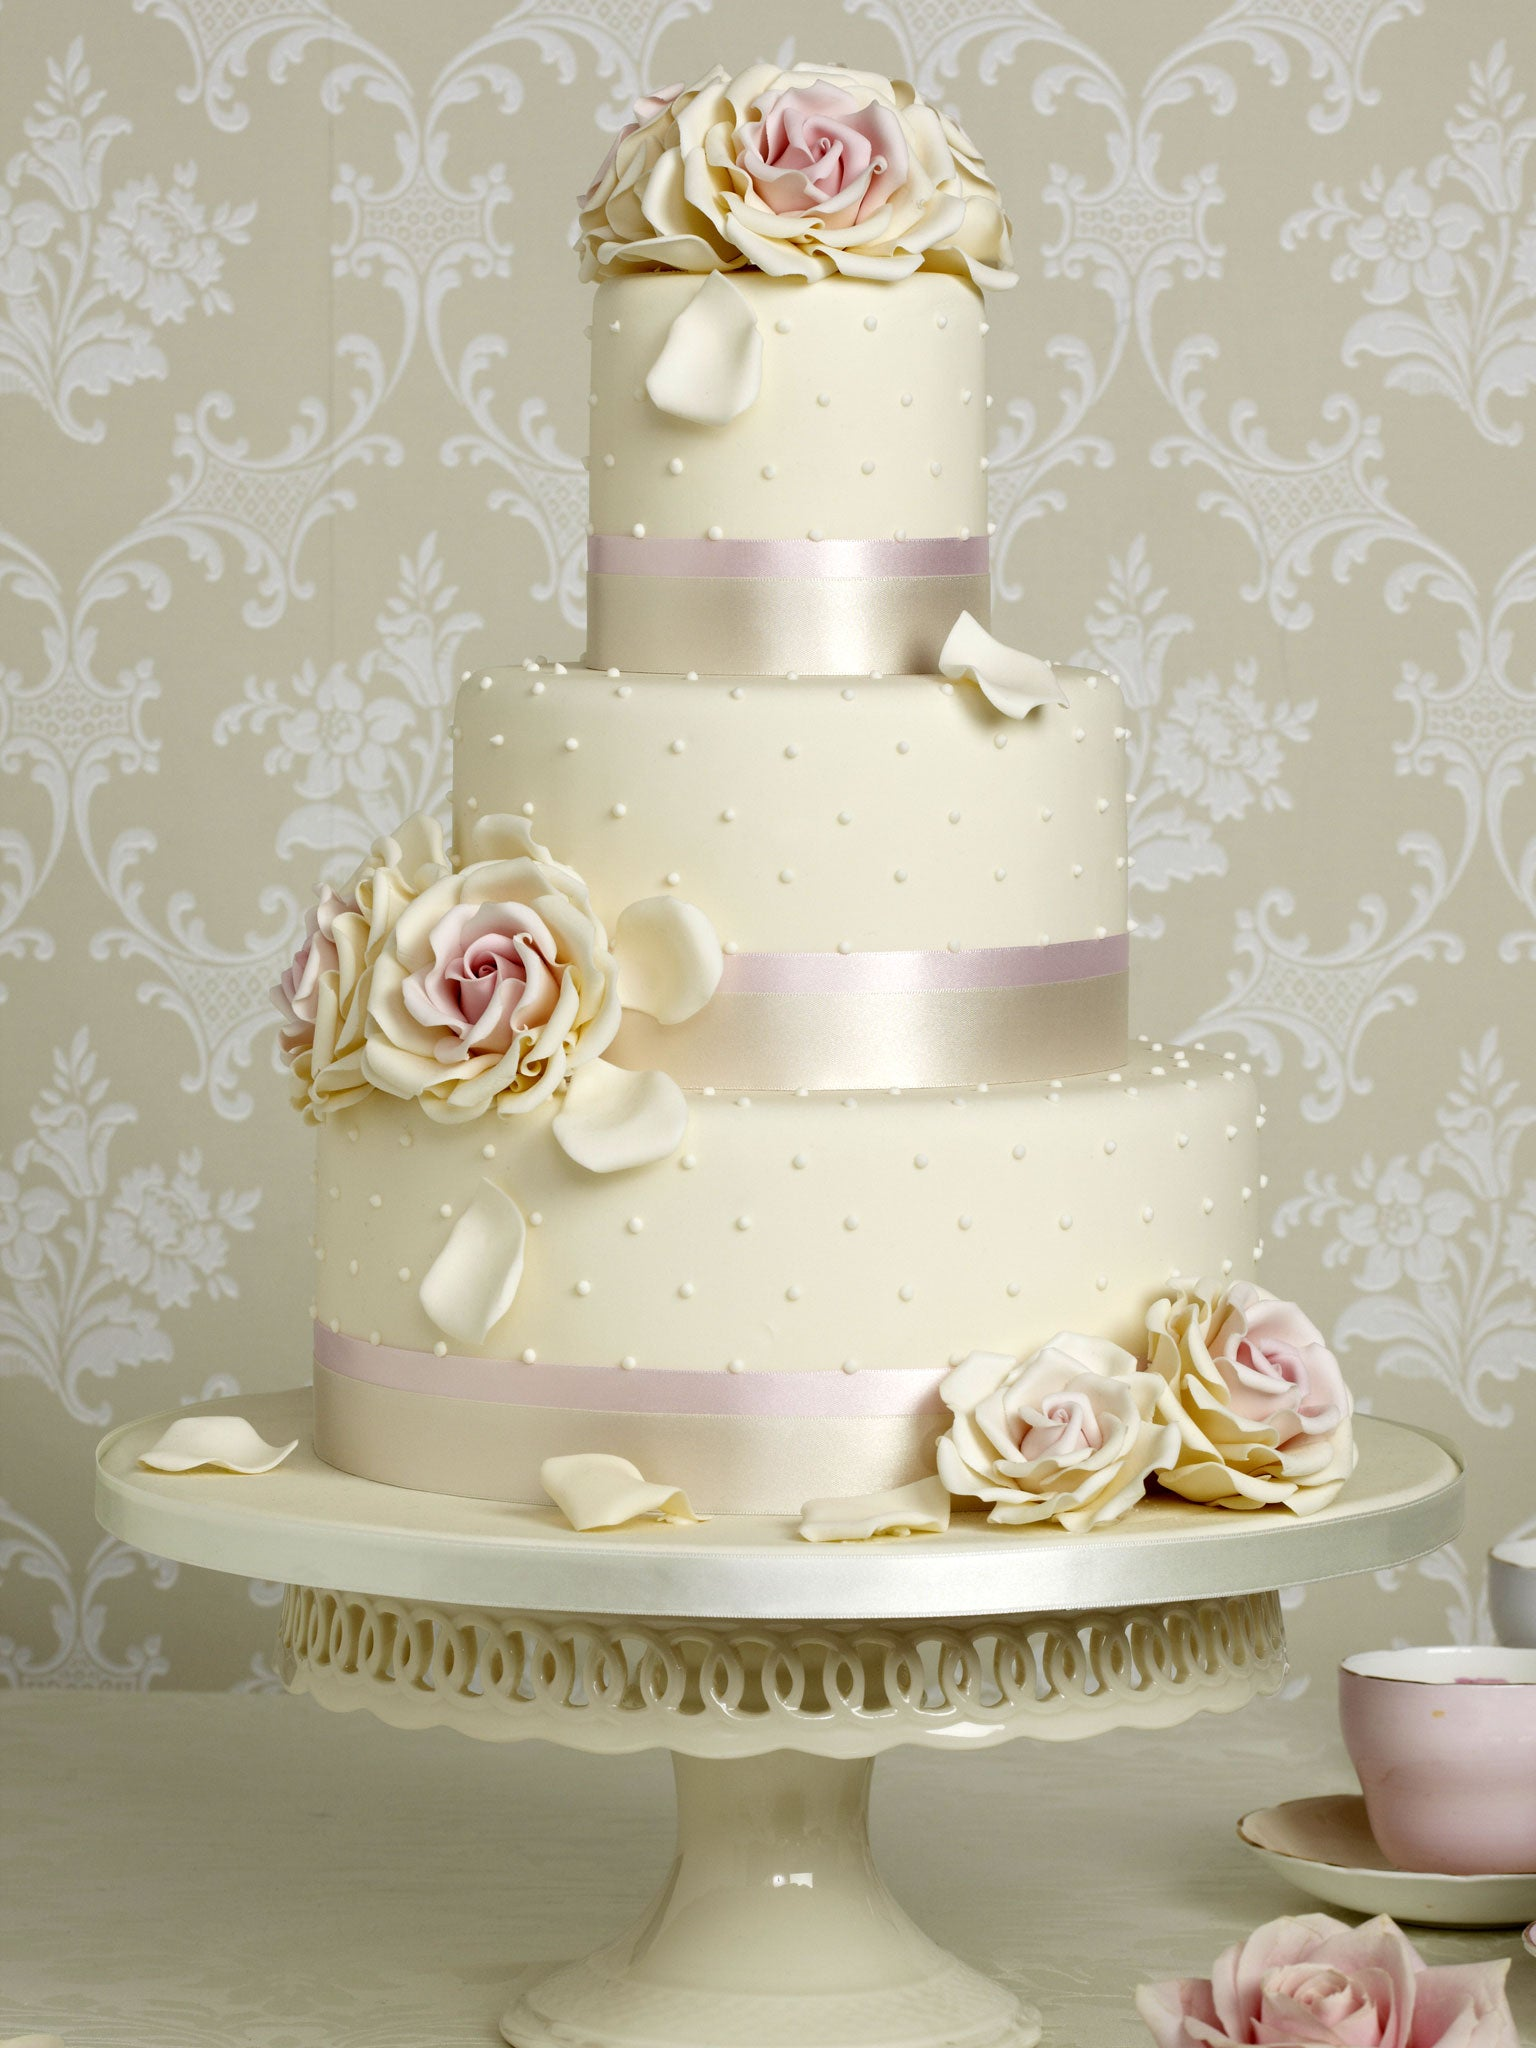 The 10 Best Wedding Cakes The Independent